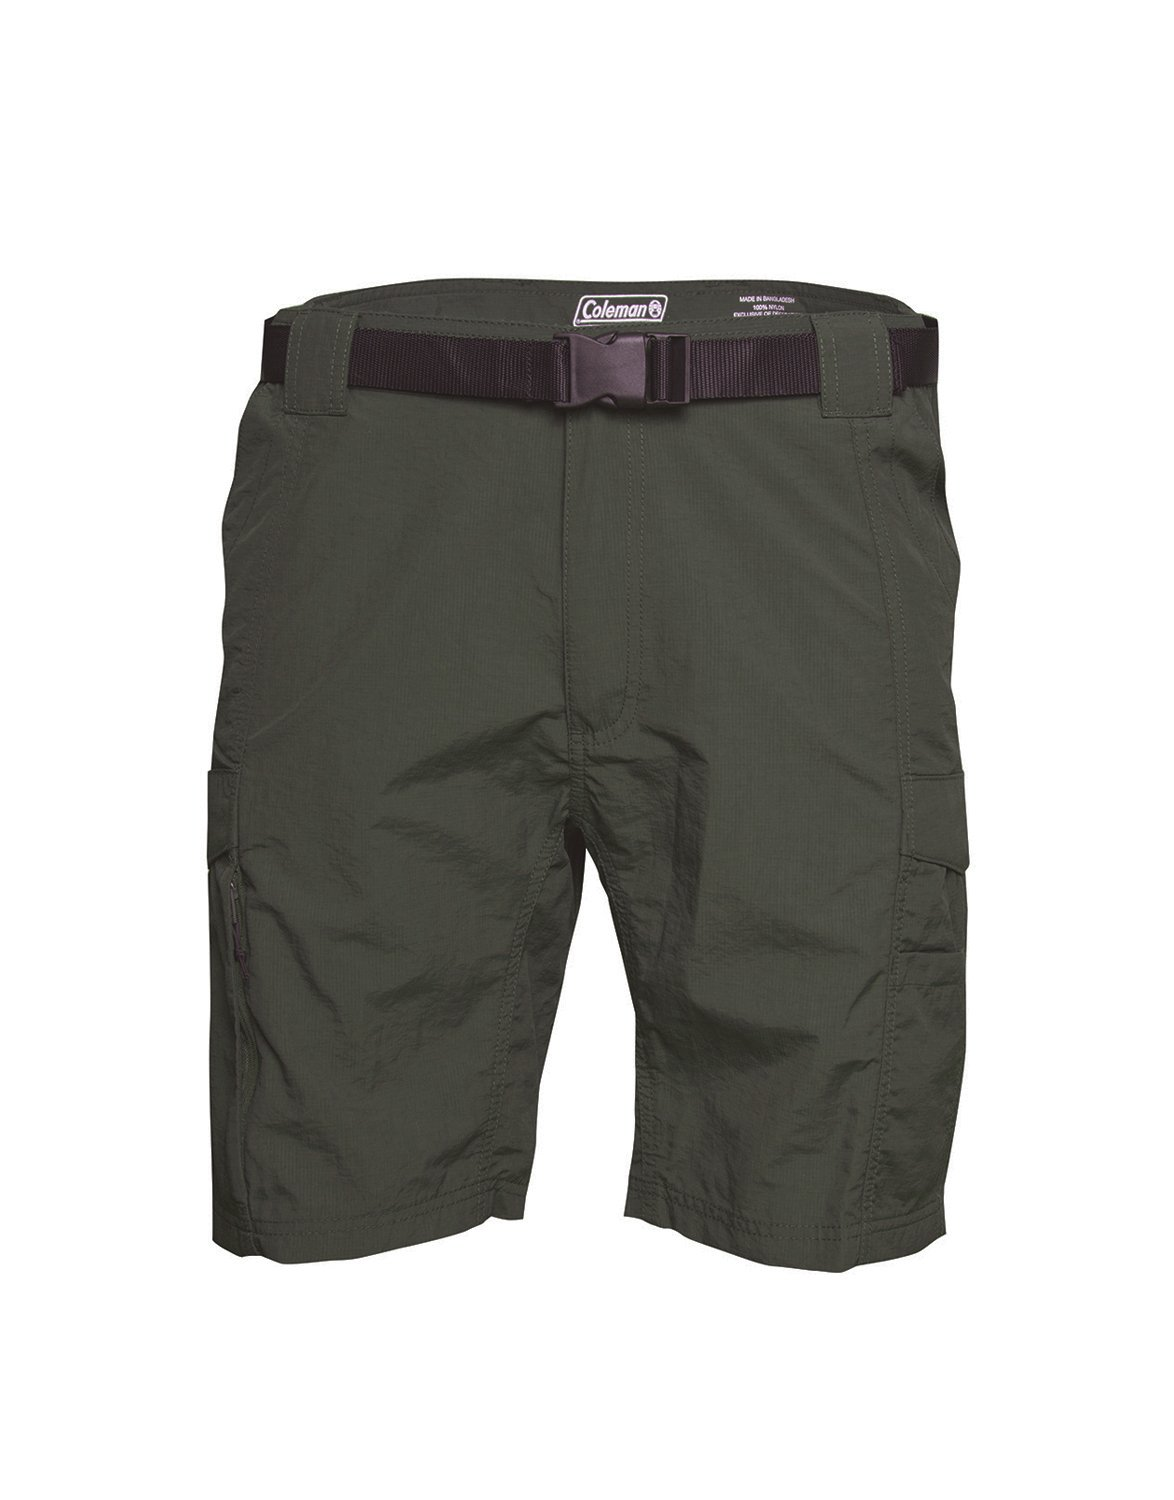 Coleman Men's Hiking Cargo Shorts with Belt Ideal for Inclement Weather 1248